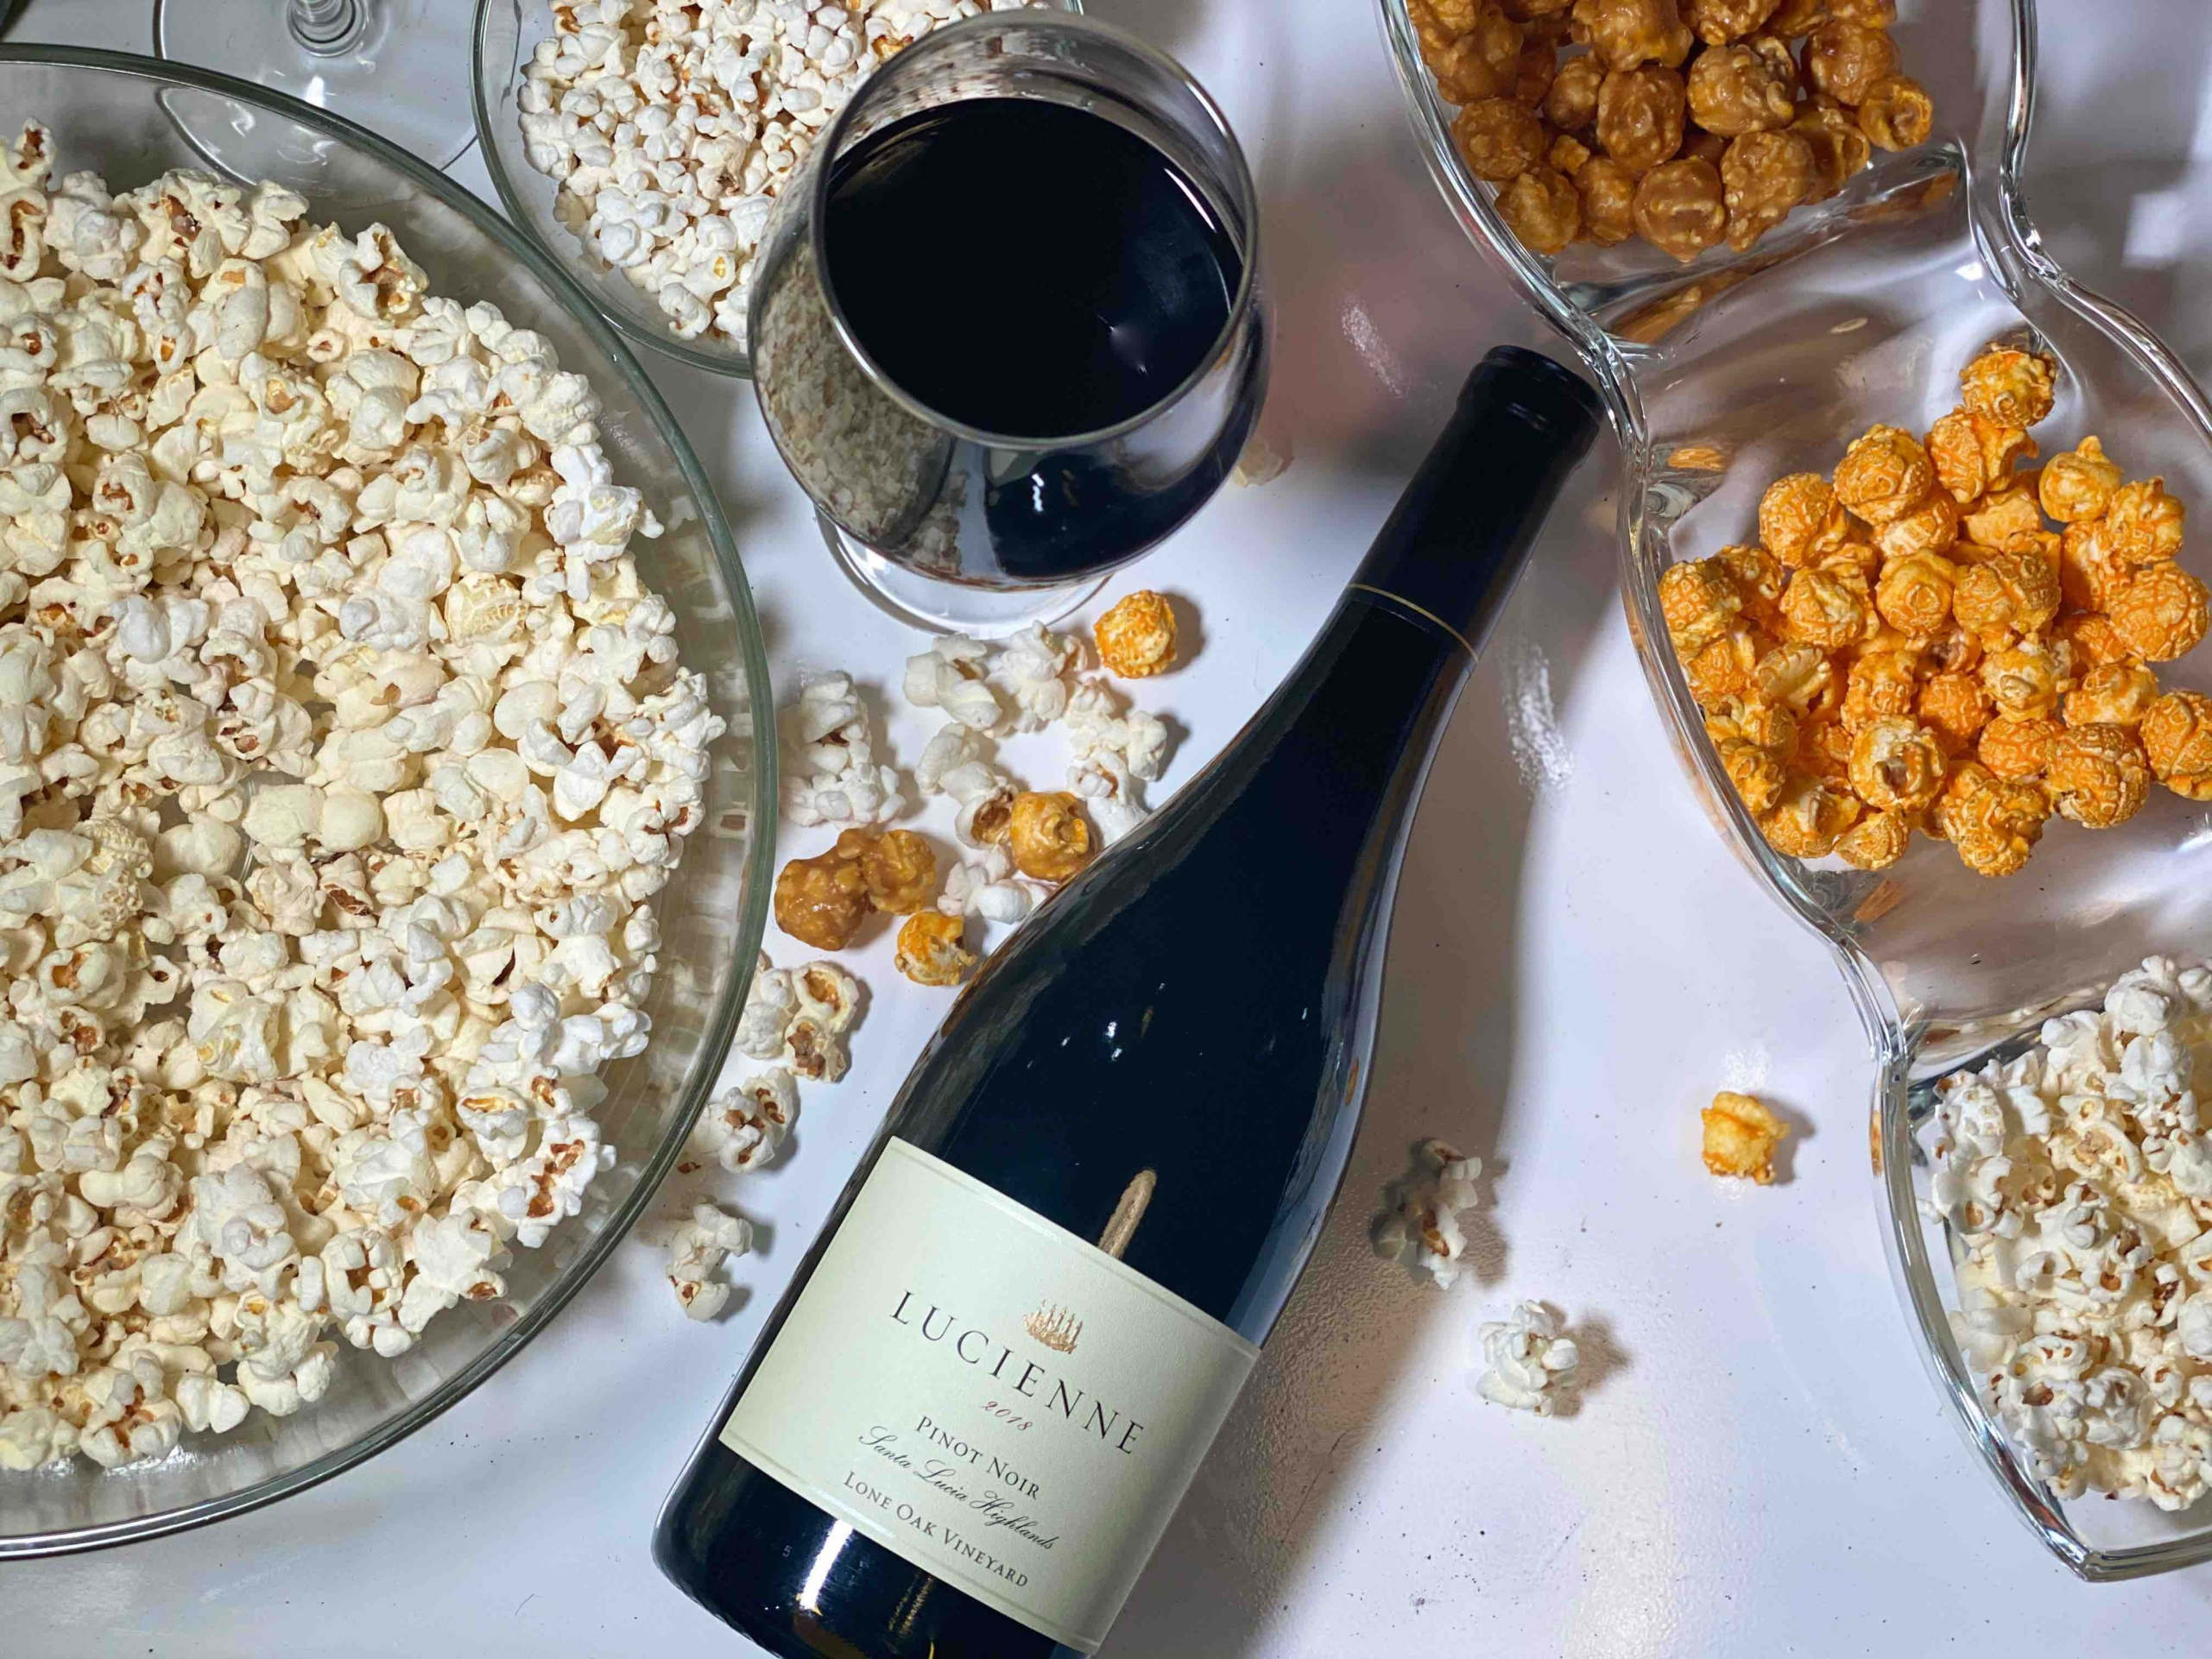 This Pinot Noir Is Best Wine And Popcorn Pairing For Your Next Binge-Watching Night